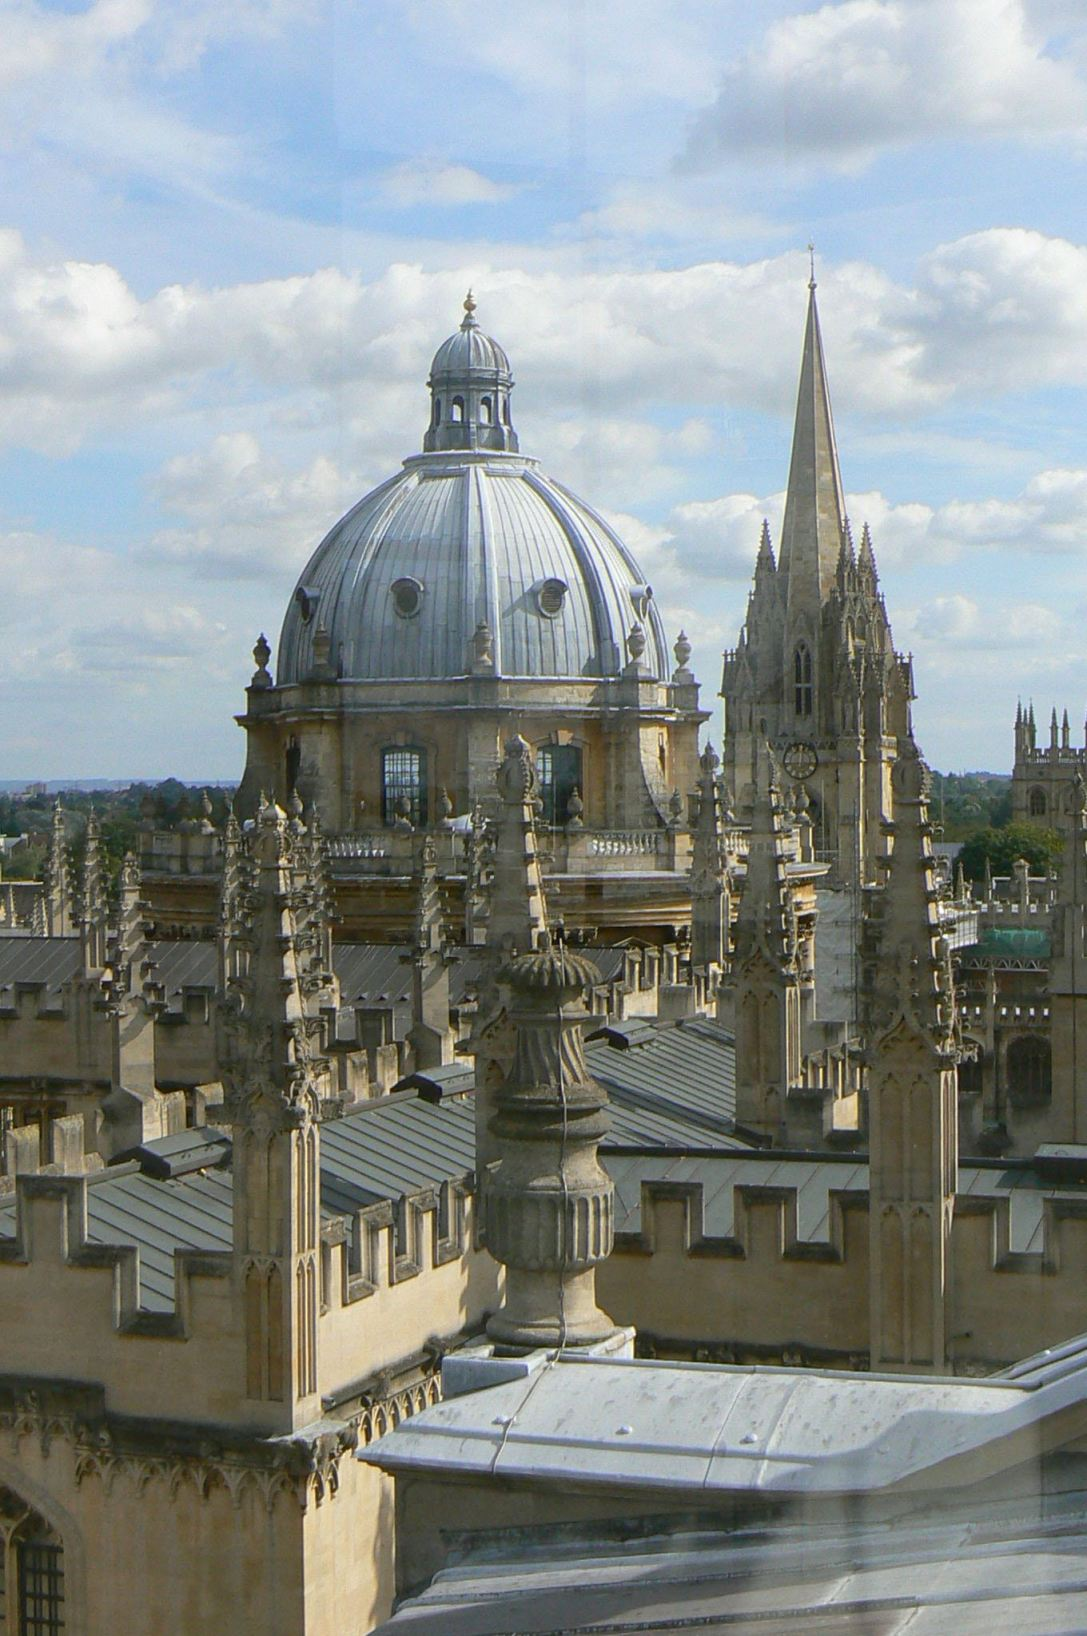 Oxford Spires: The Radcliffe and University Church of St Mary's , Oxford, UK